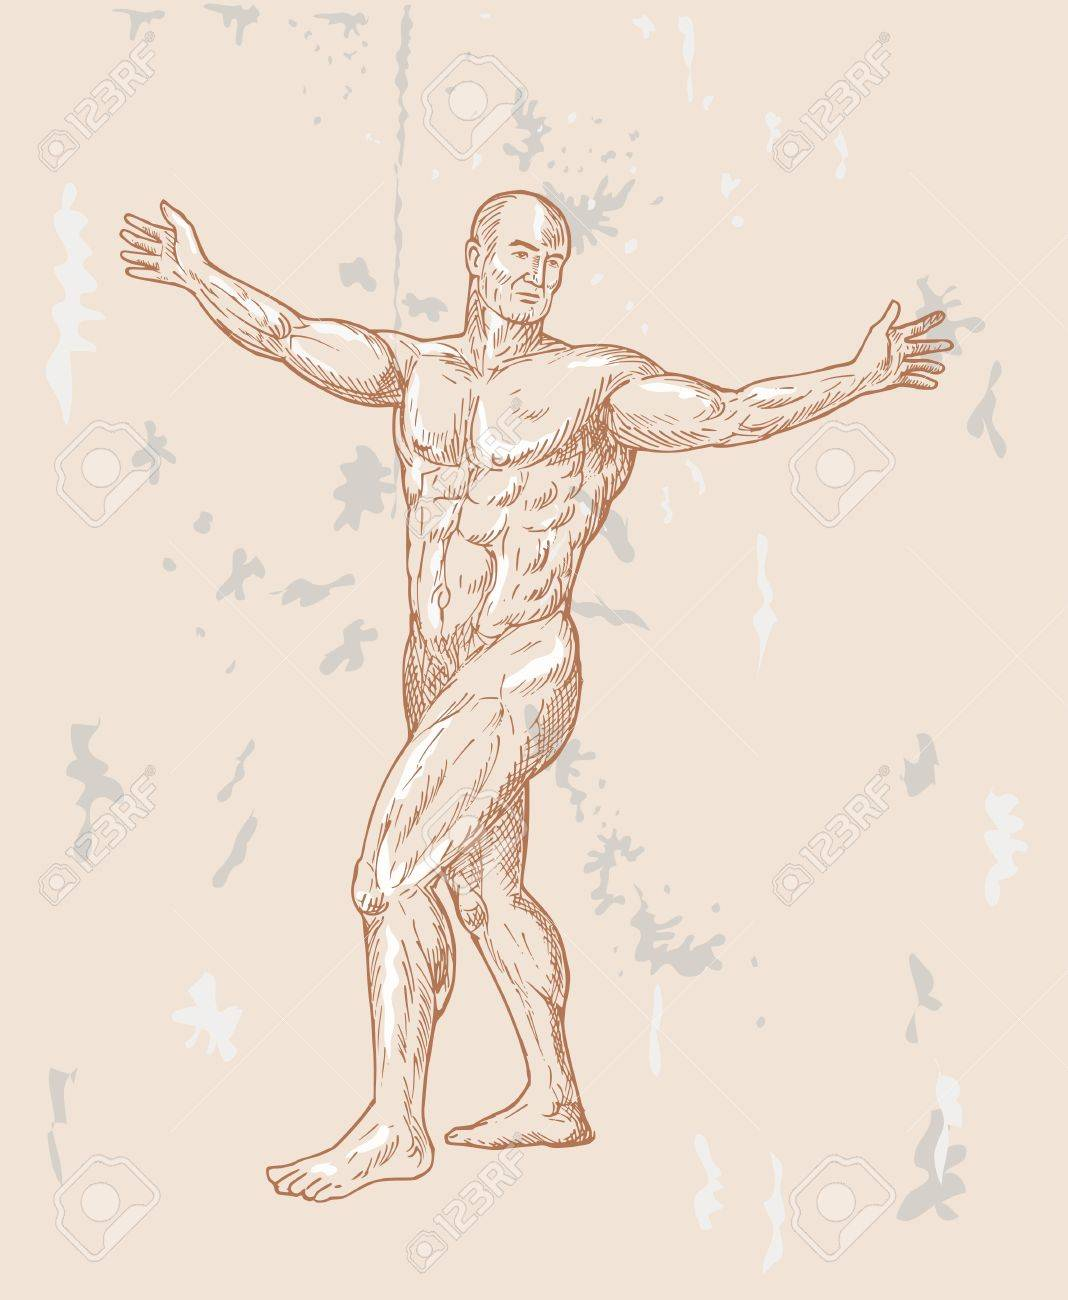 Hand Sketched Illustration Of The Male Human Anatomy Done In.. Stock ...